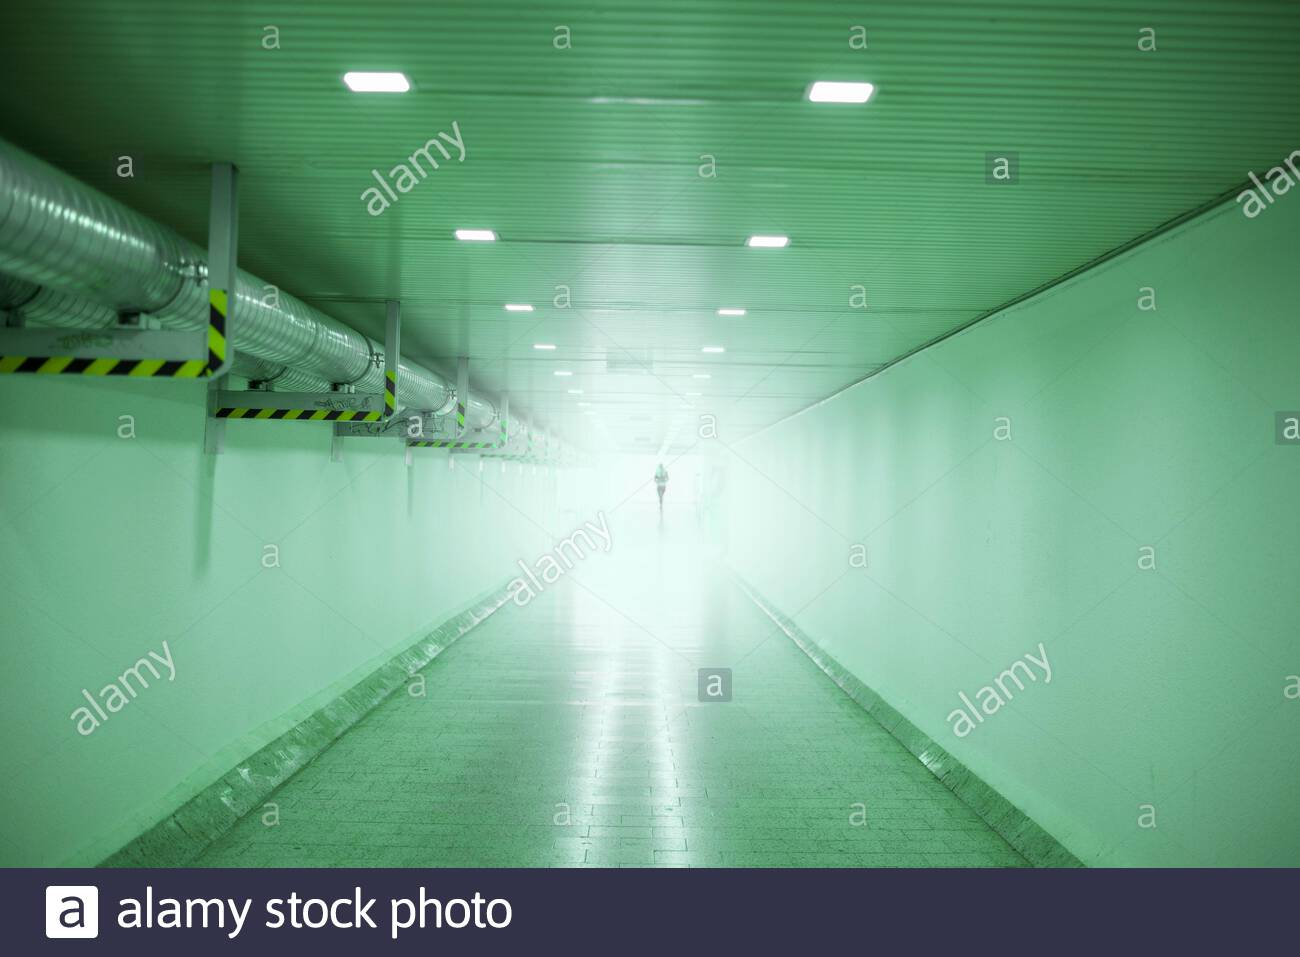 silhouette of person in underpass tunnel in green 2AKWRW3